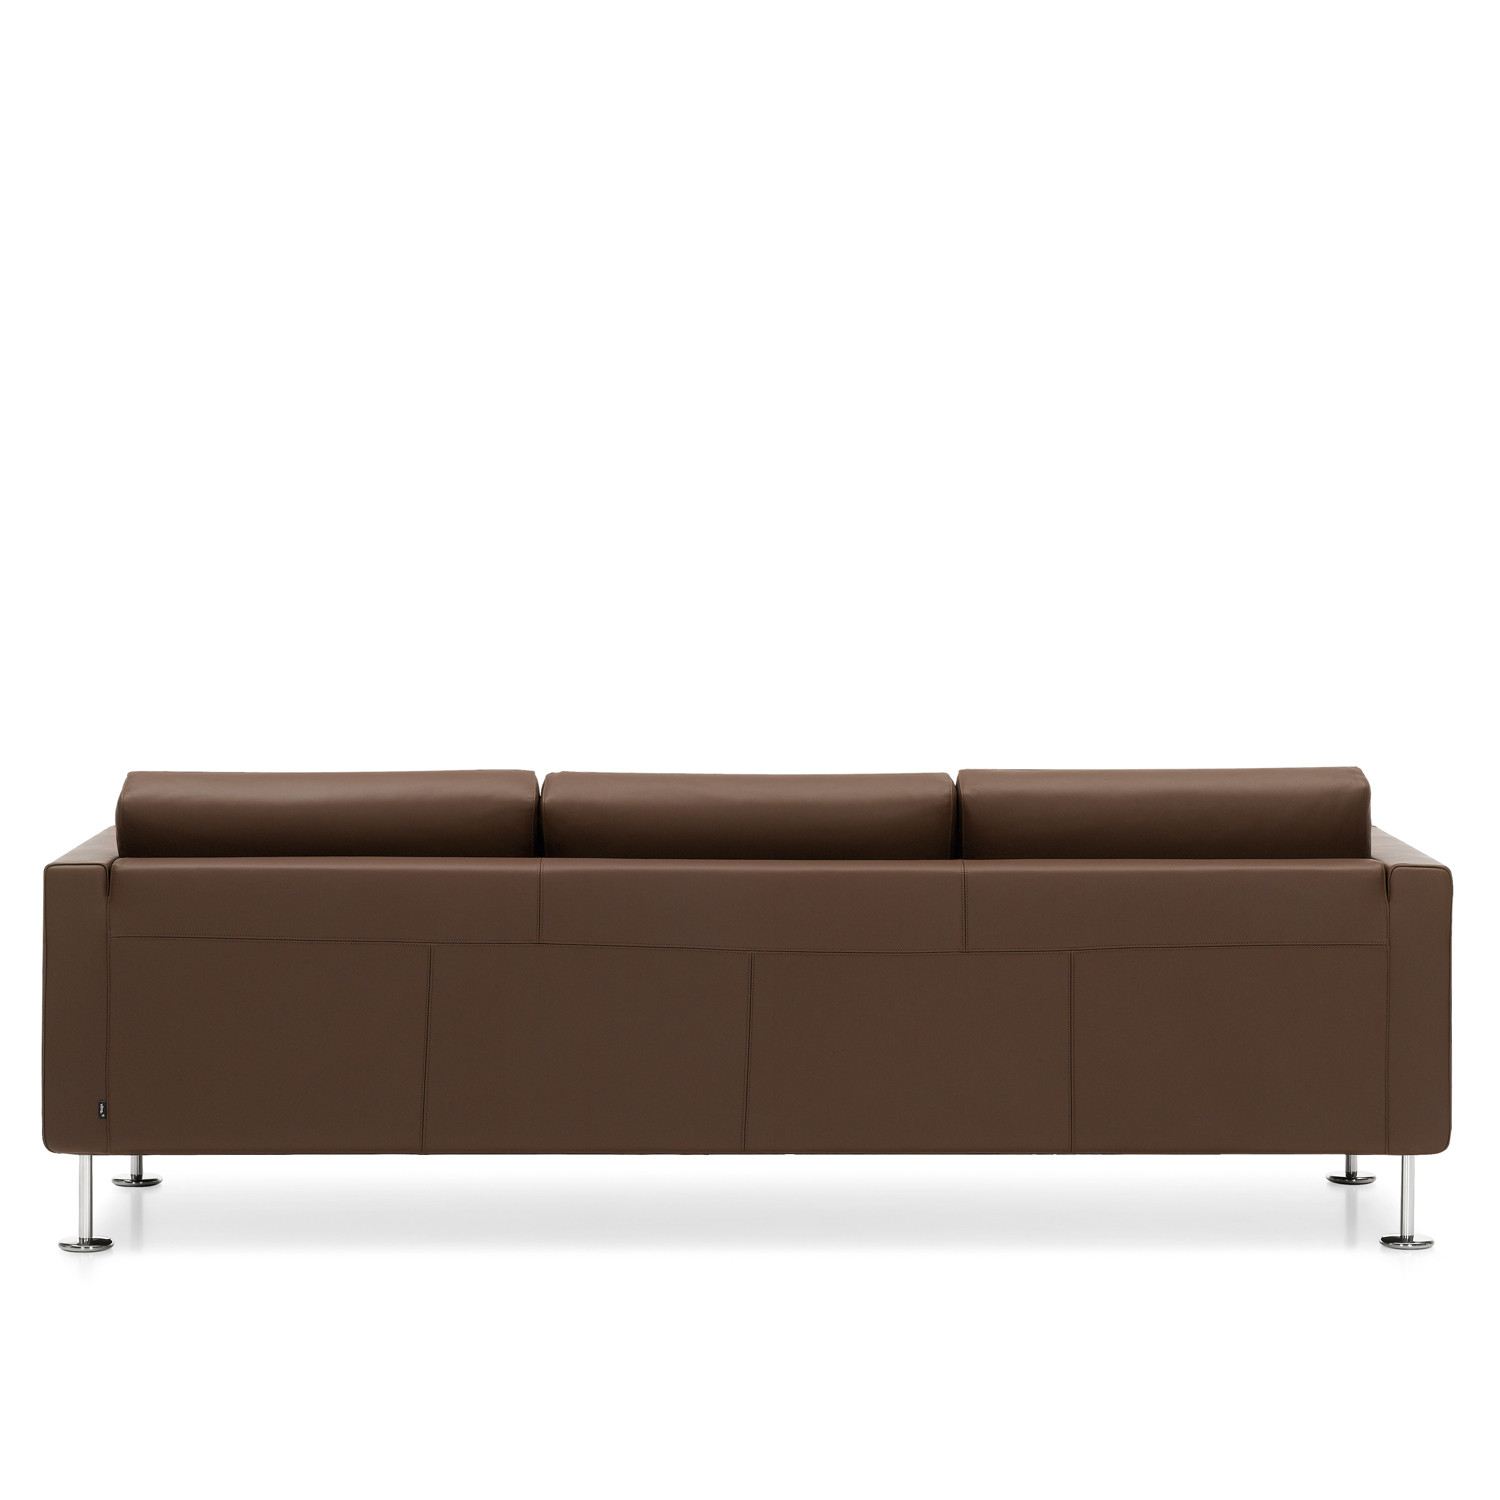 Park Sofa 3-Seater Rear View